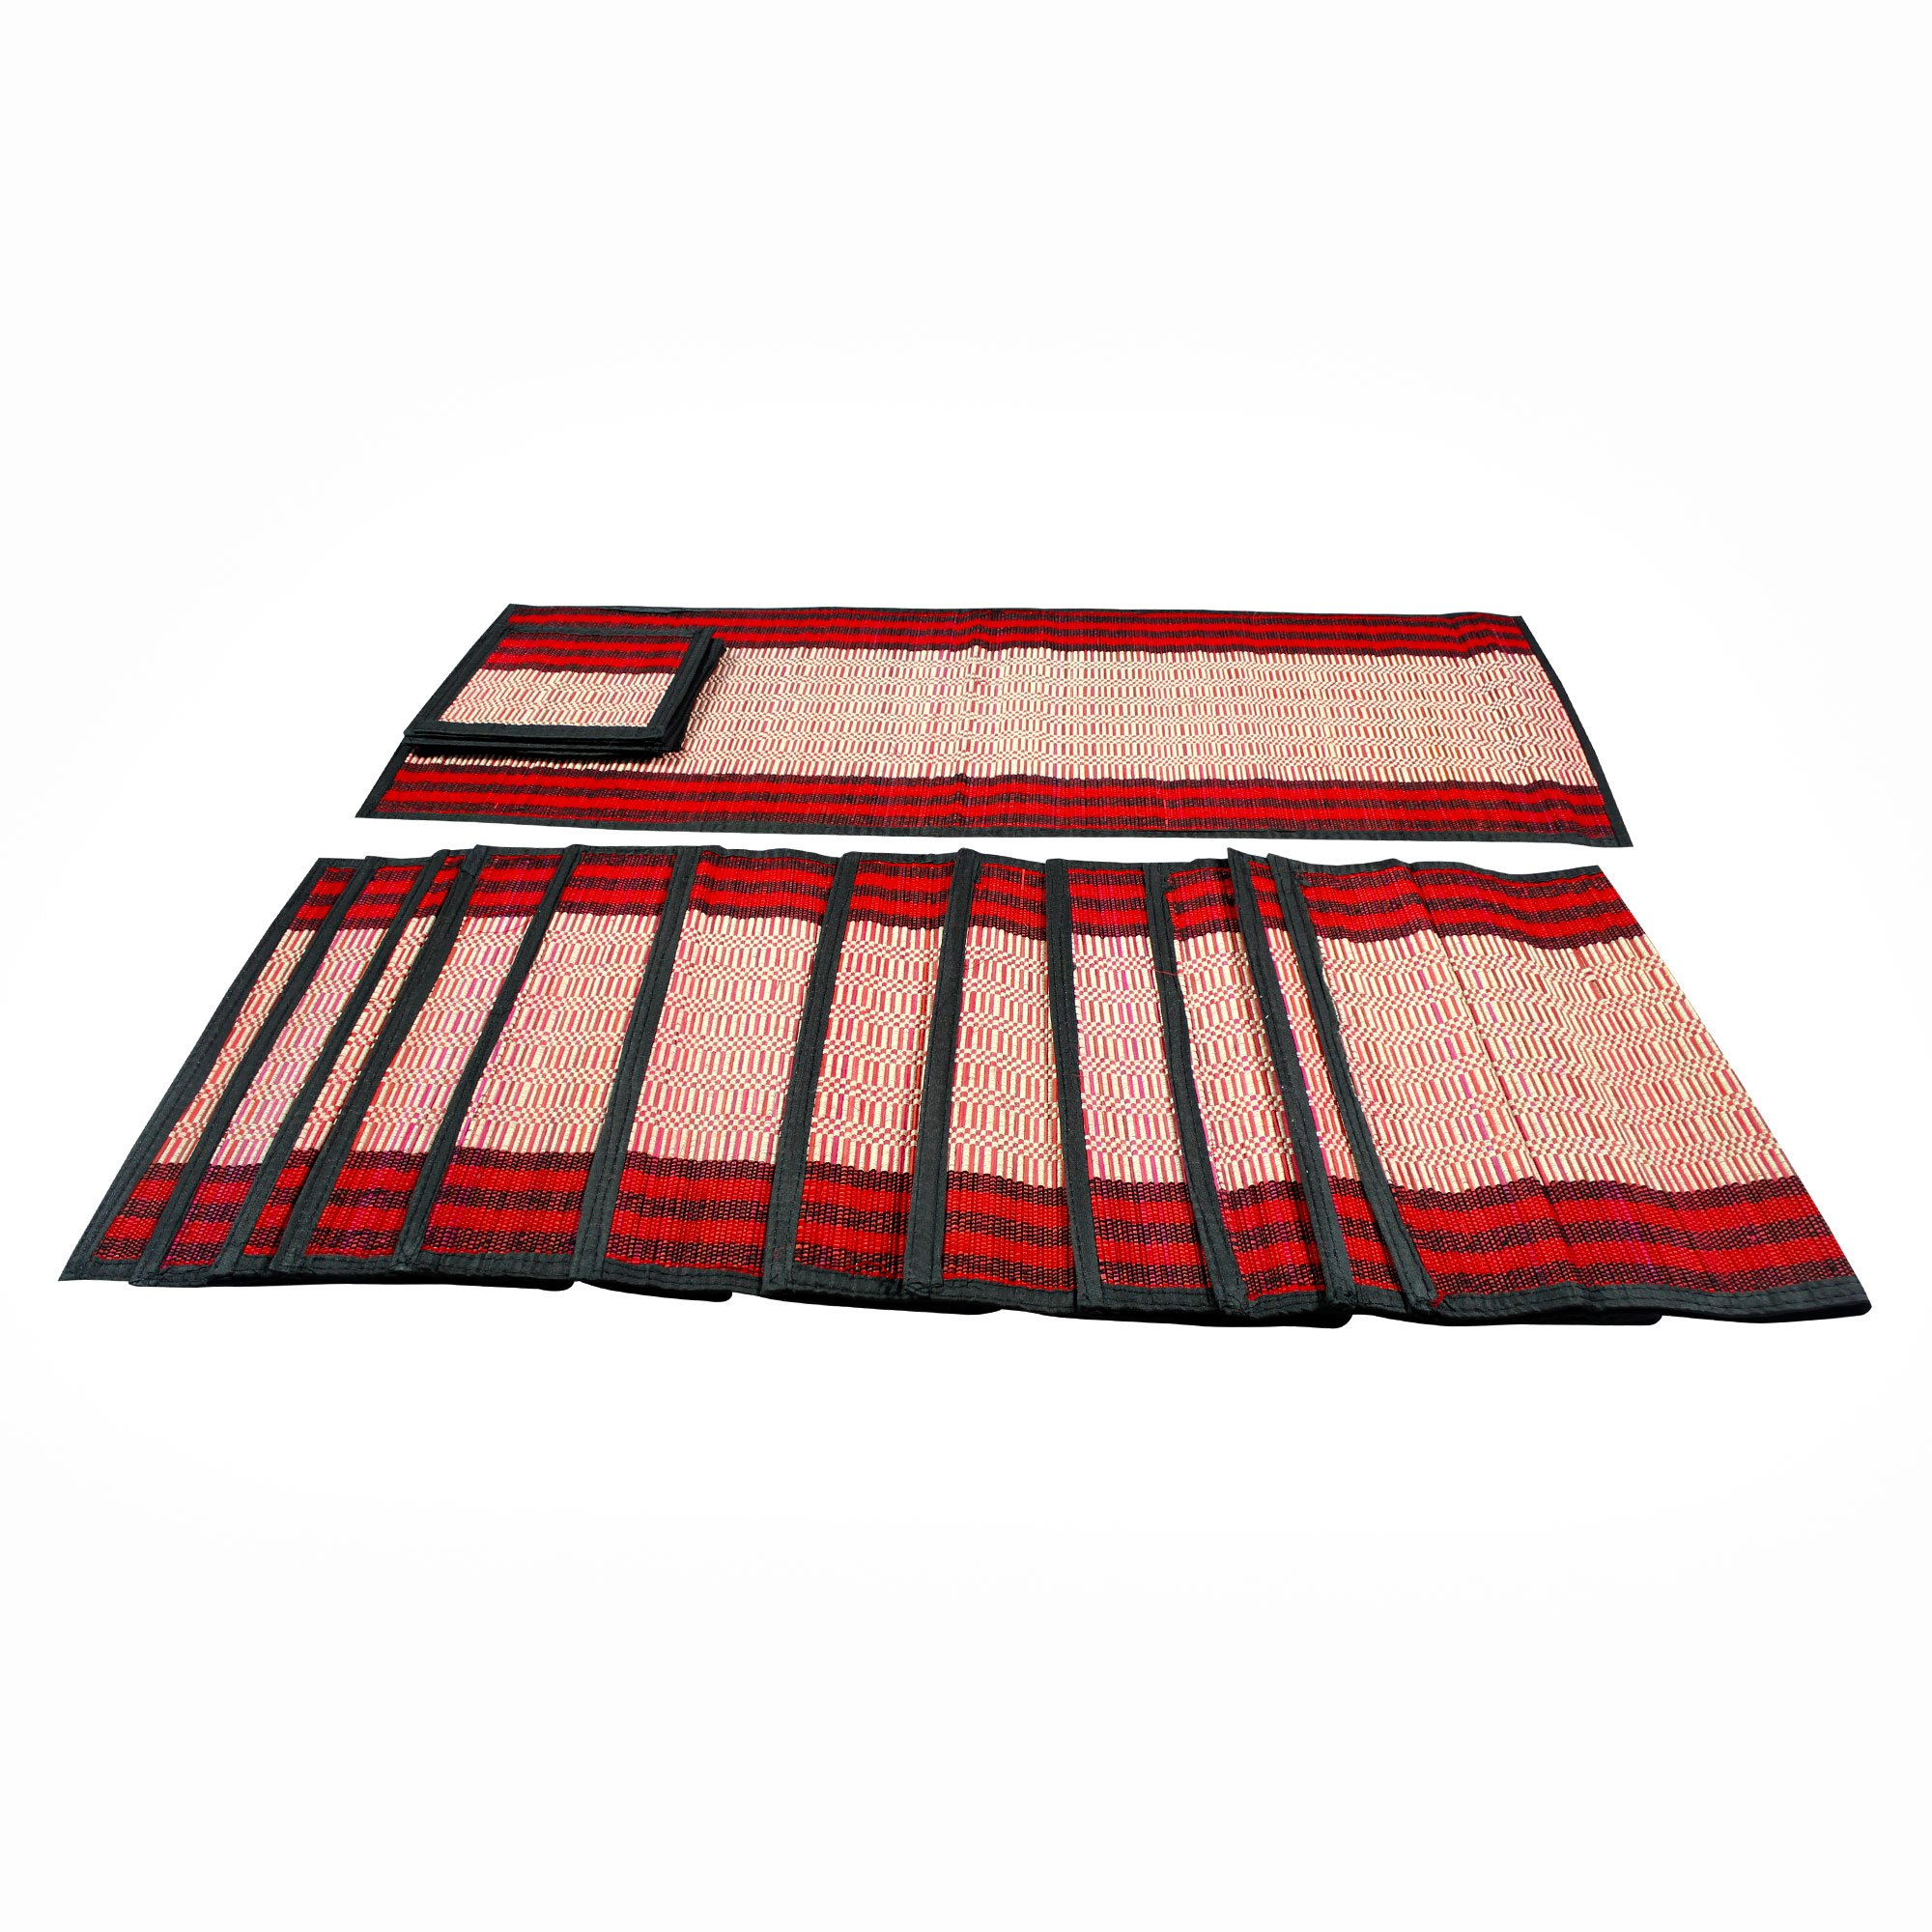 RoyaltyRoute Table Runner Place mats Tea Coaster Set of 6 (1+6+6) Multicolored Dining kitchen Linen Hand-Woven décor Gift